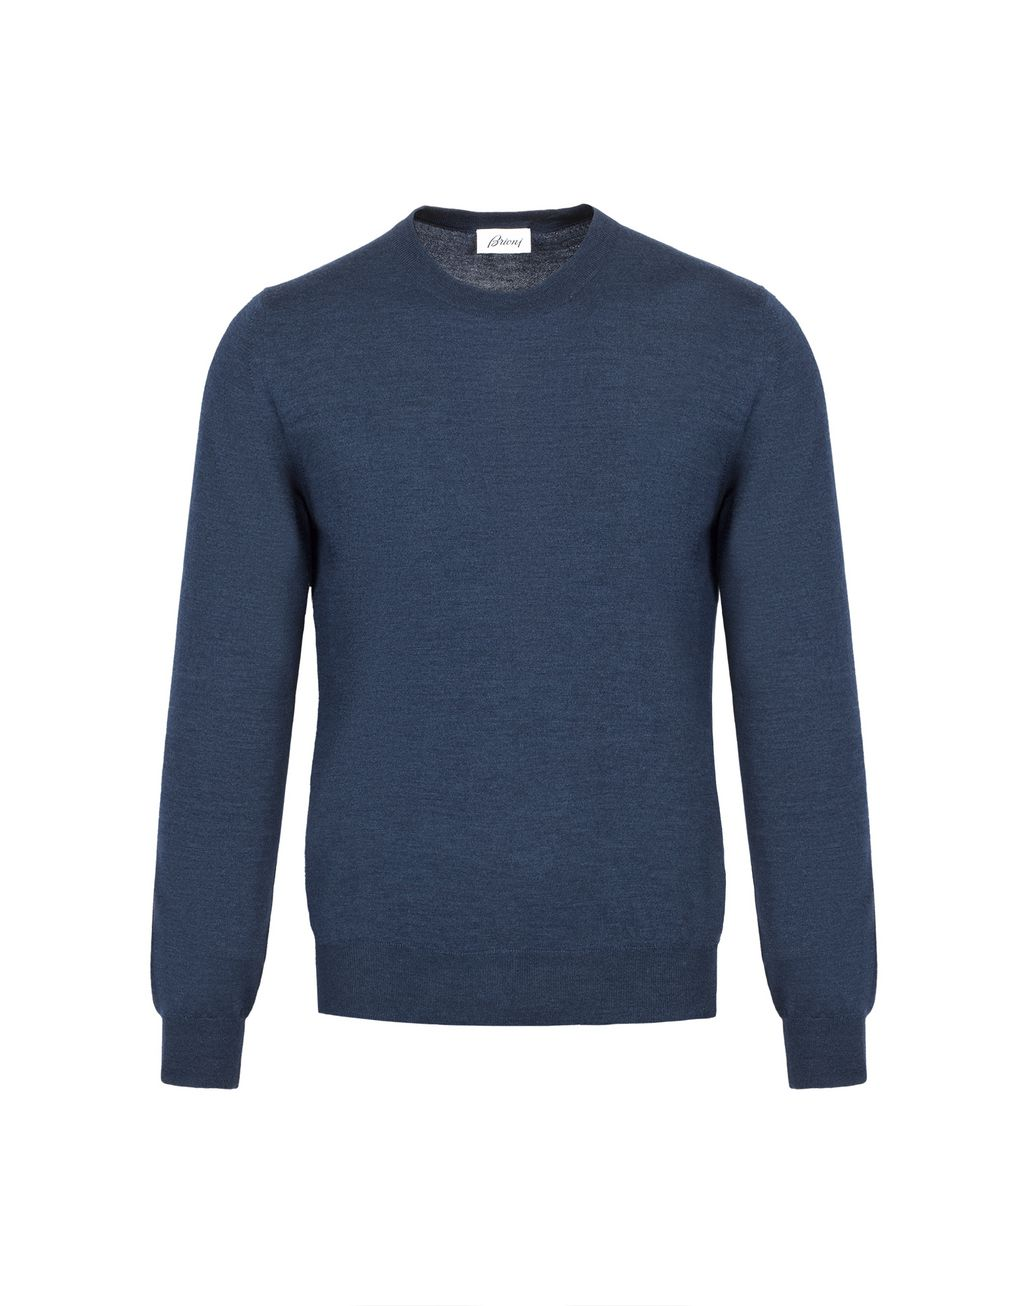 BRIONI Bluette Crew-Neck Sweater Knitwear U f